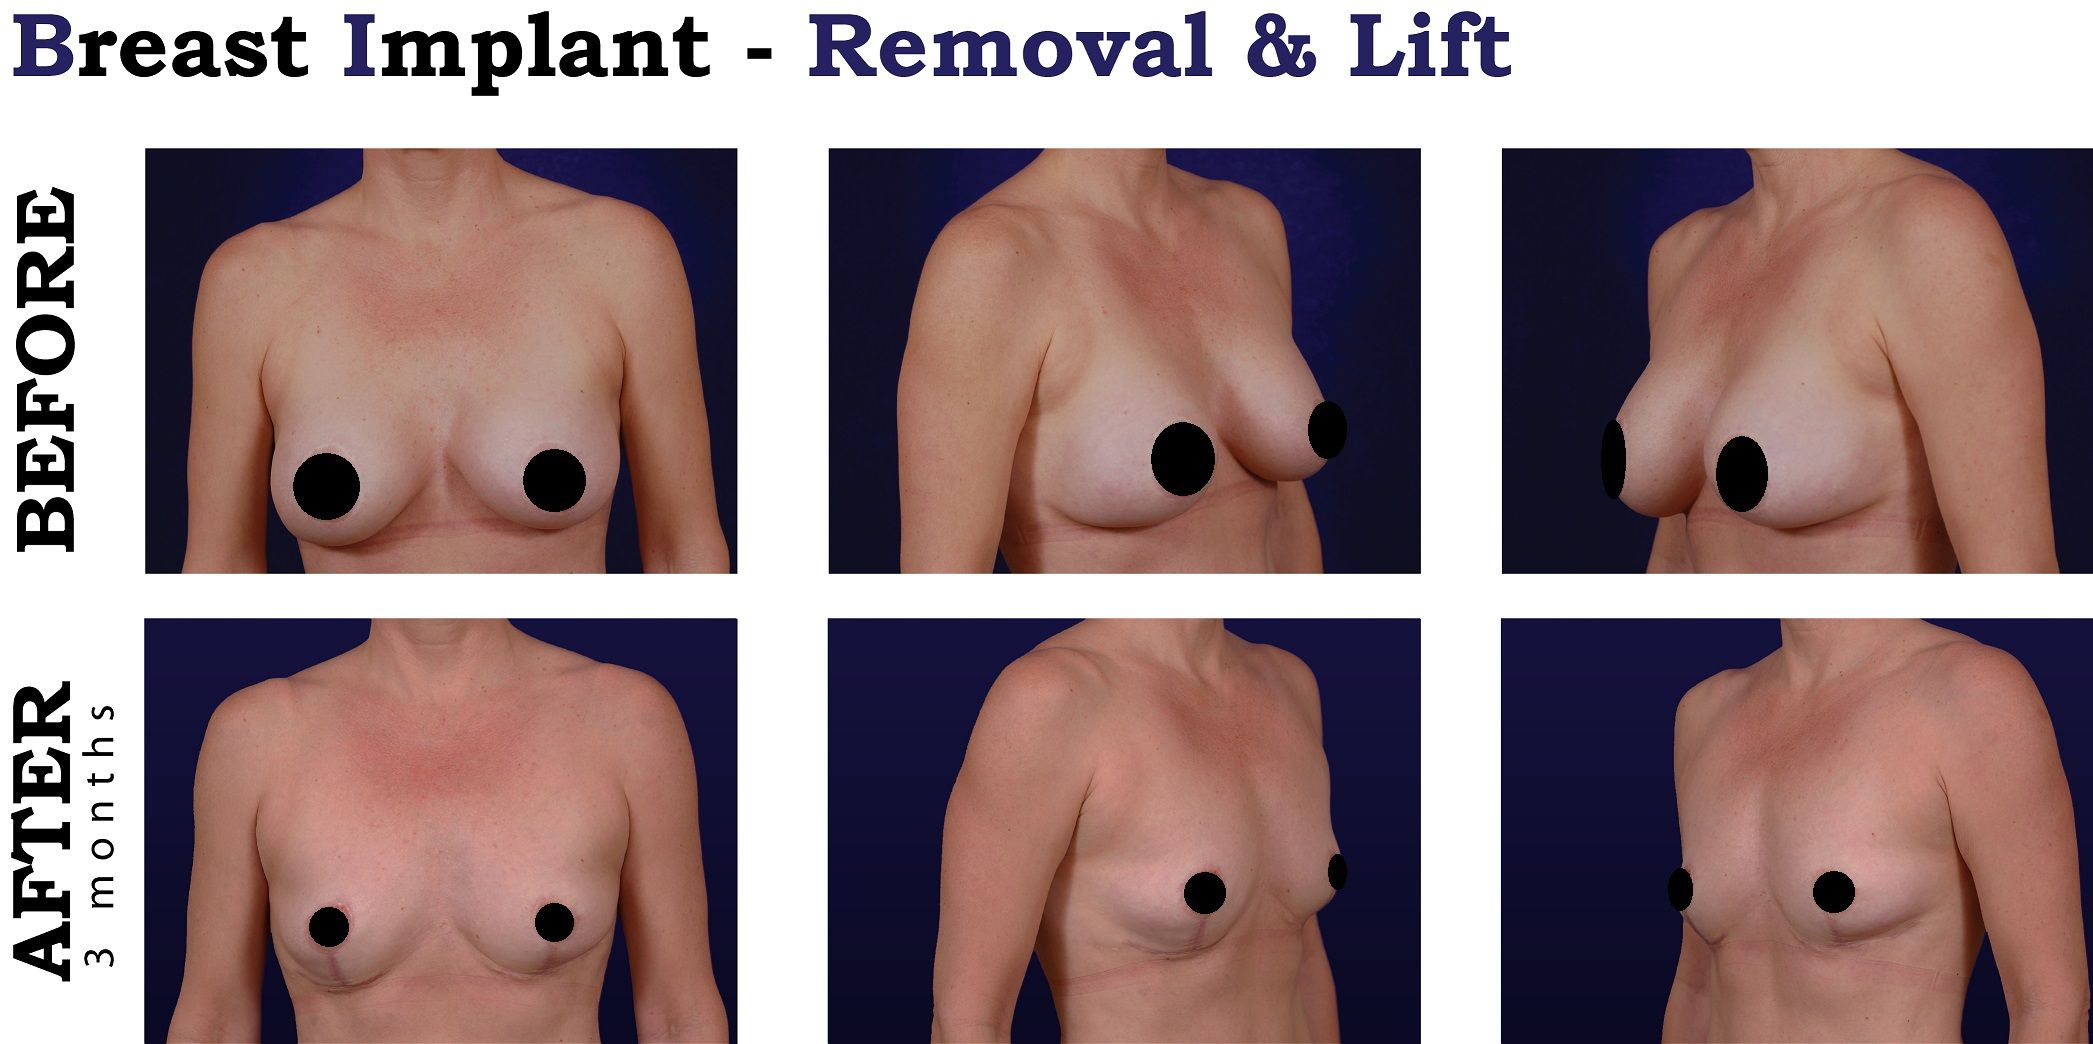 Breast augmentation before and after delivery: 7 most important questions